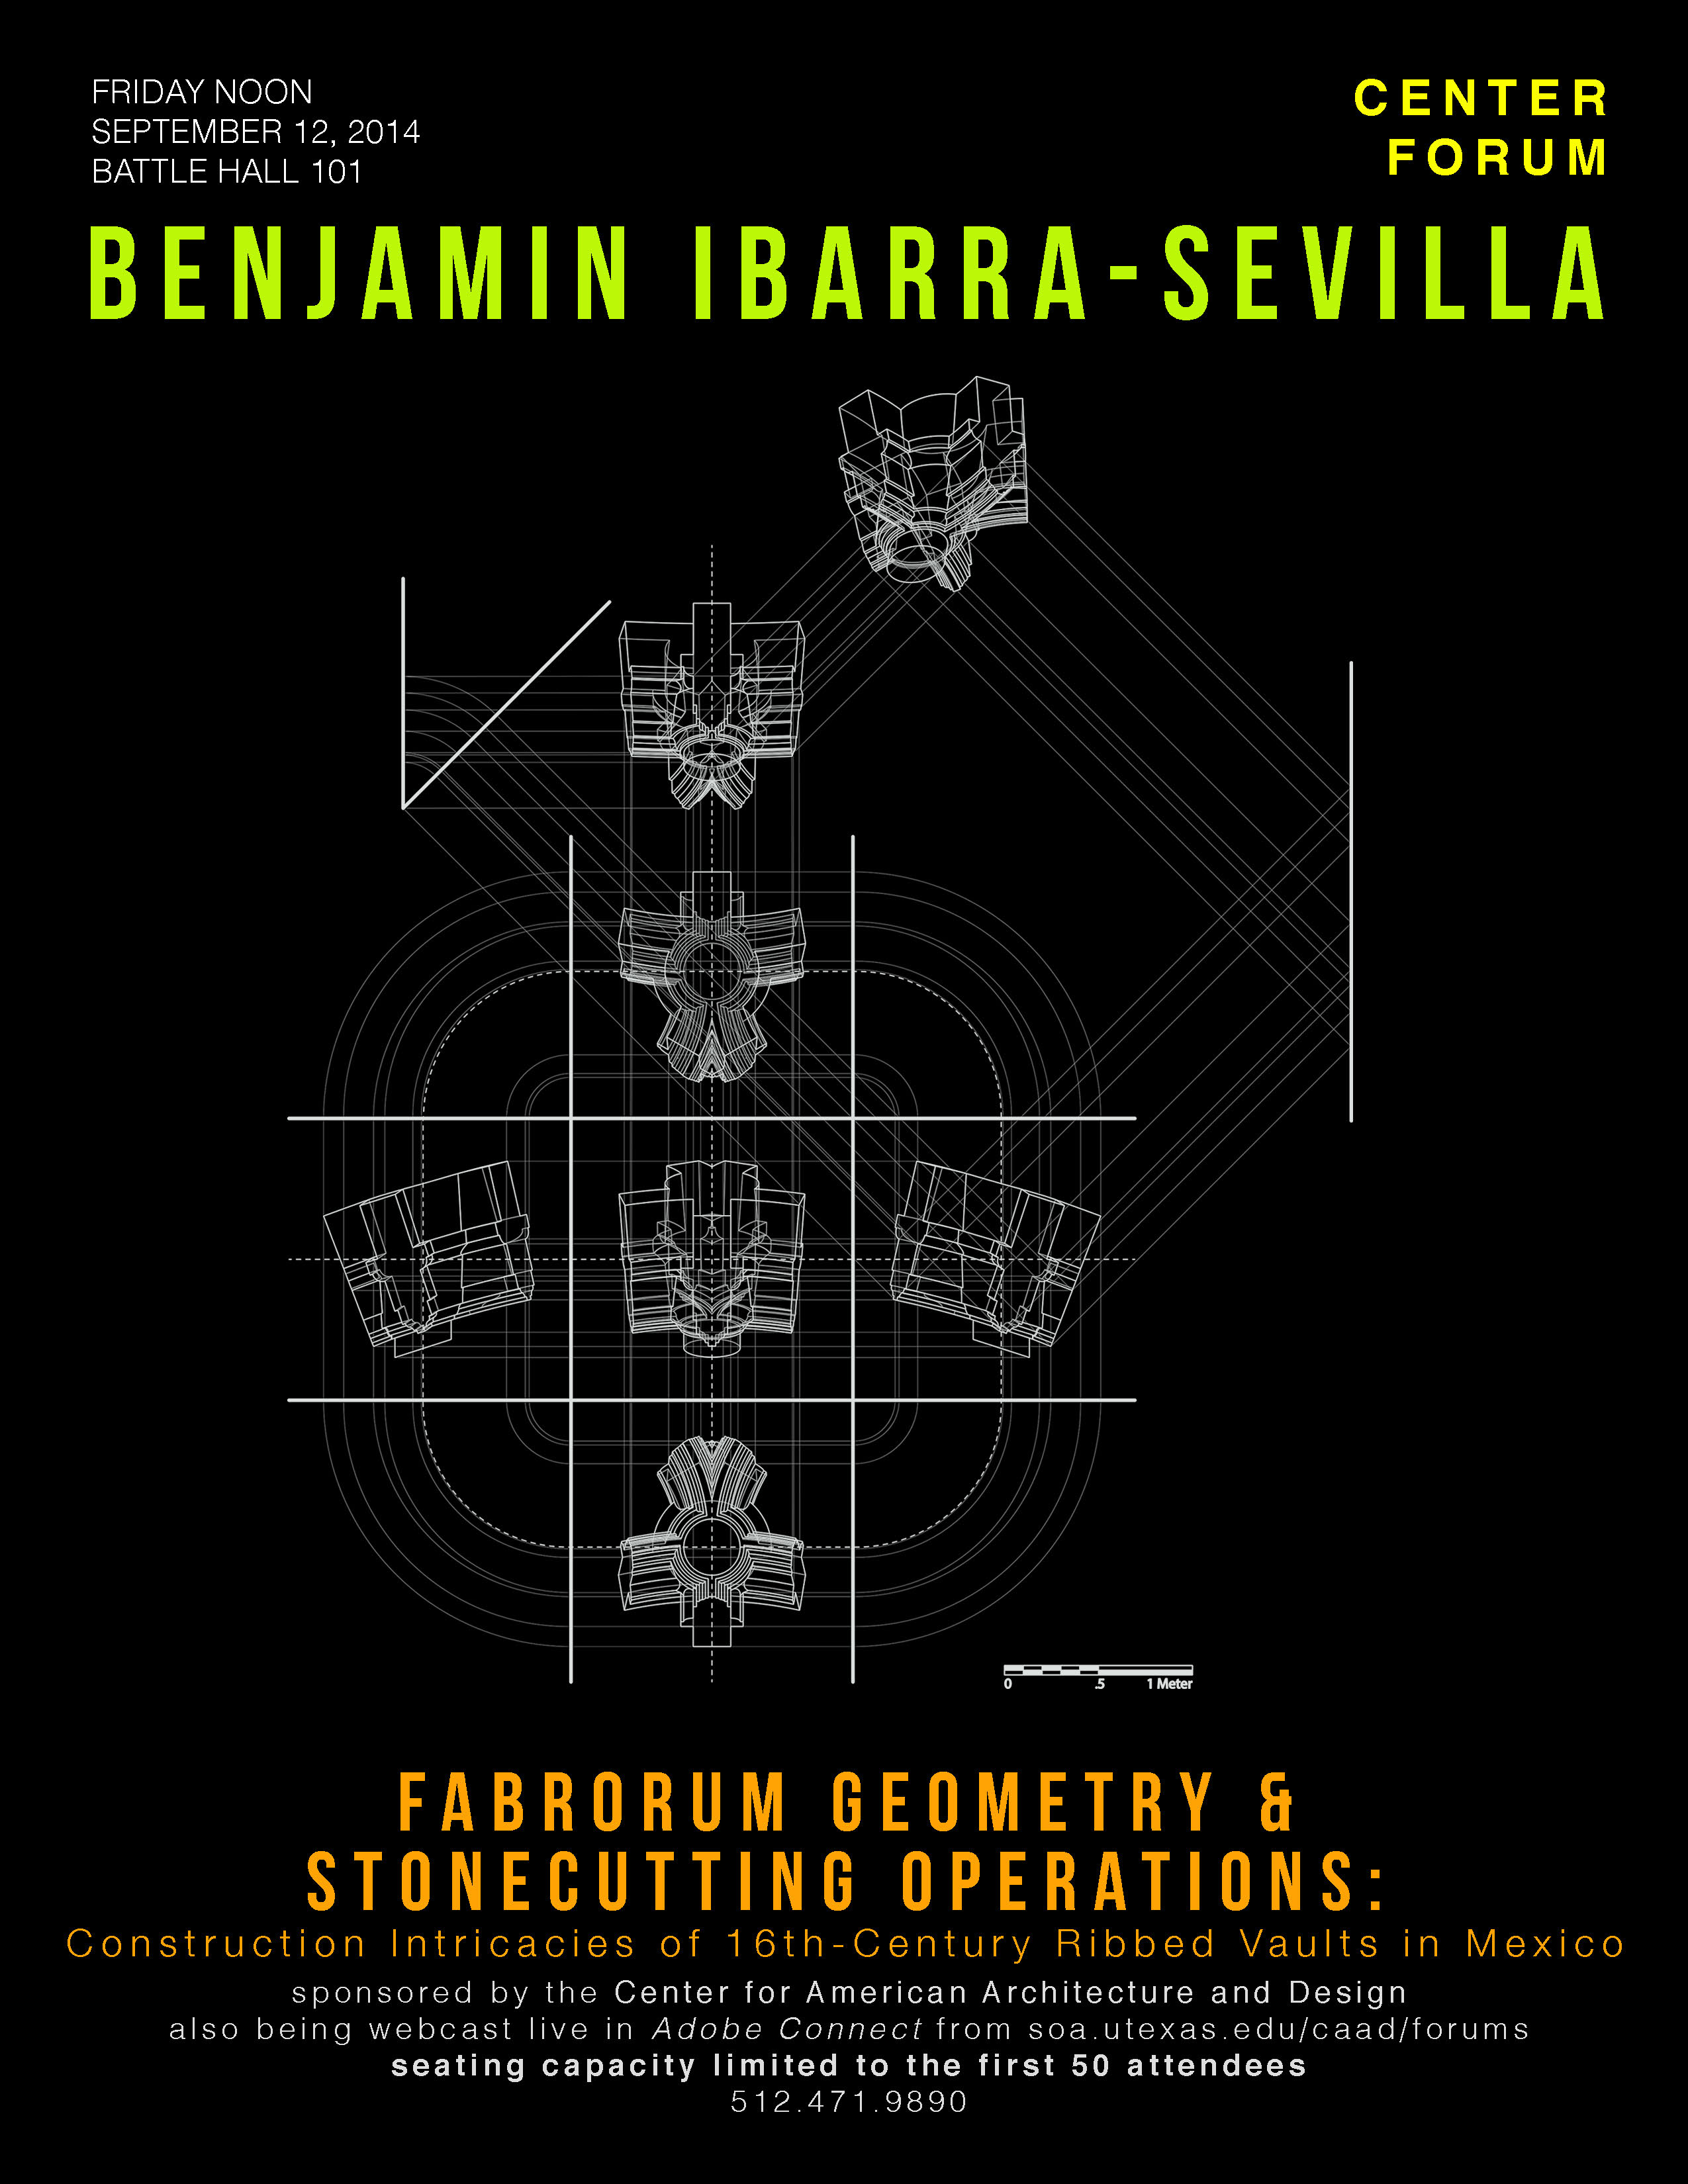 Benjamin Ibarra-Sevilla - Farborum Geometry and Stonecutting Operations